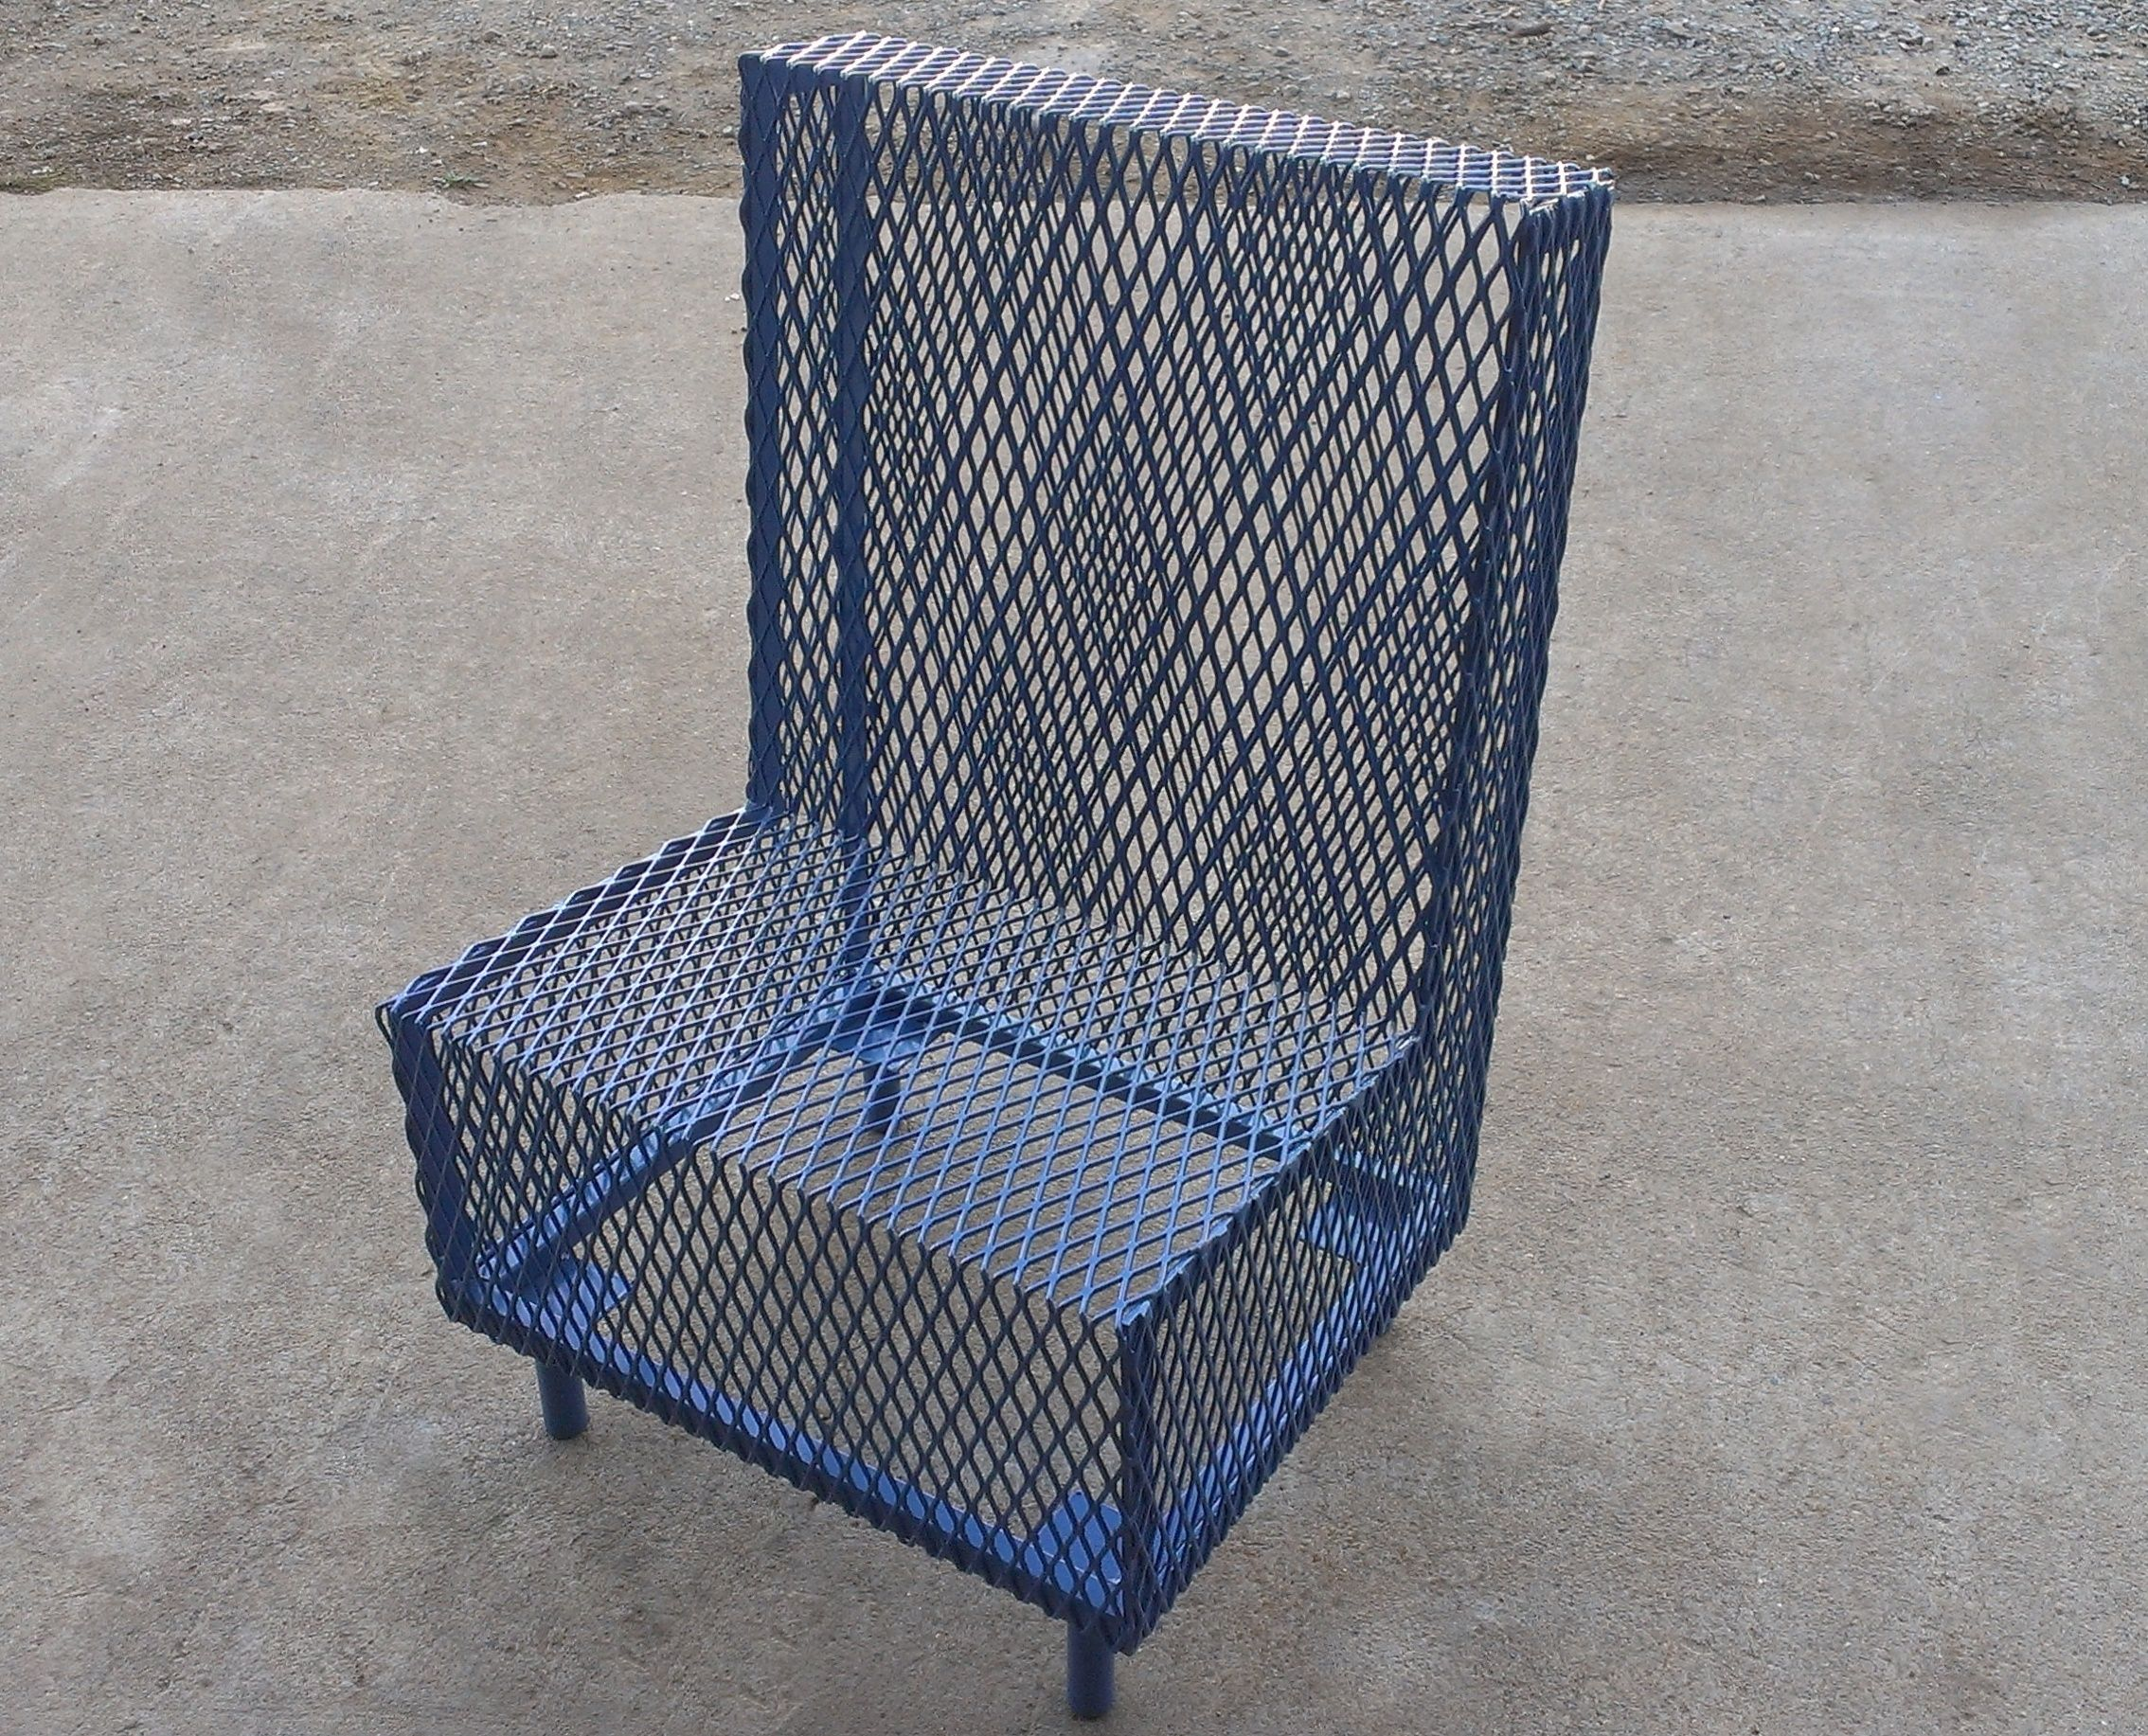 A perforated metal chair powder coated in grecian blue by napa valley custom metal